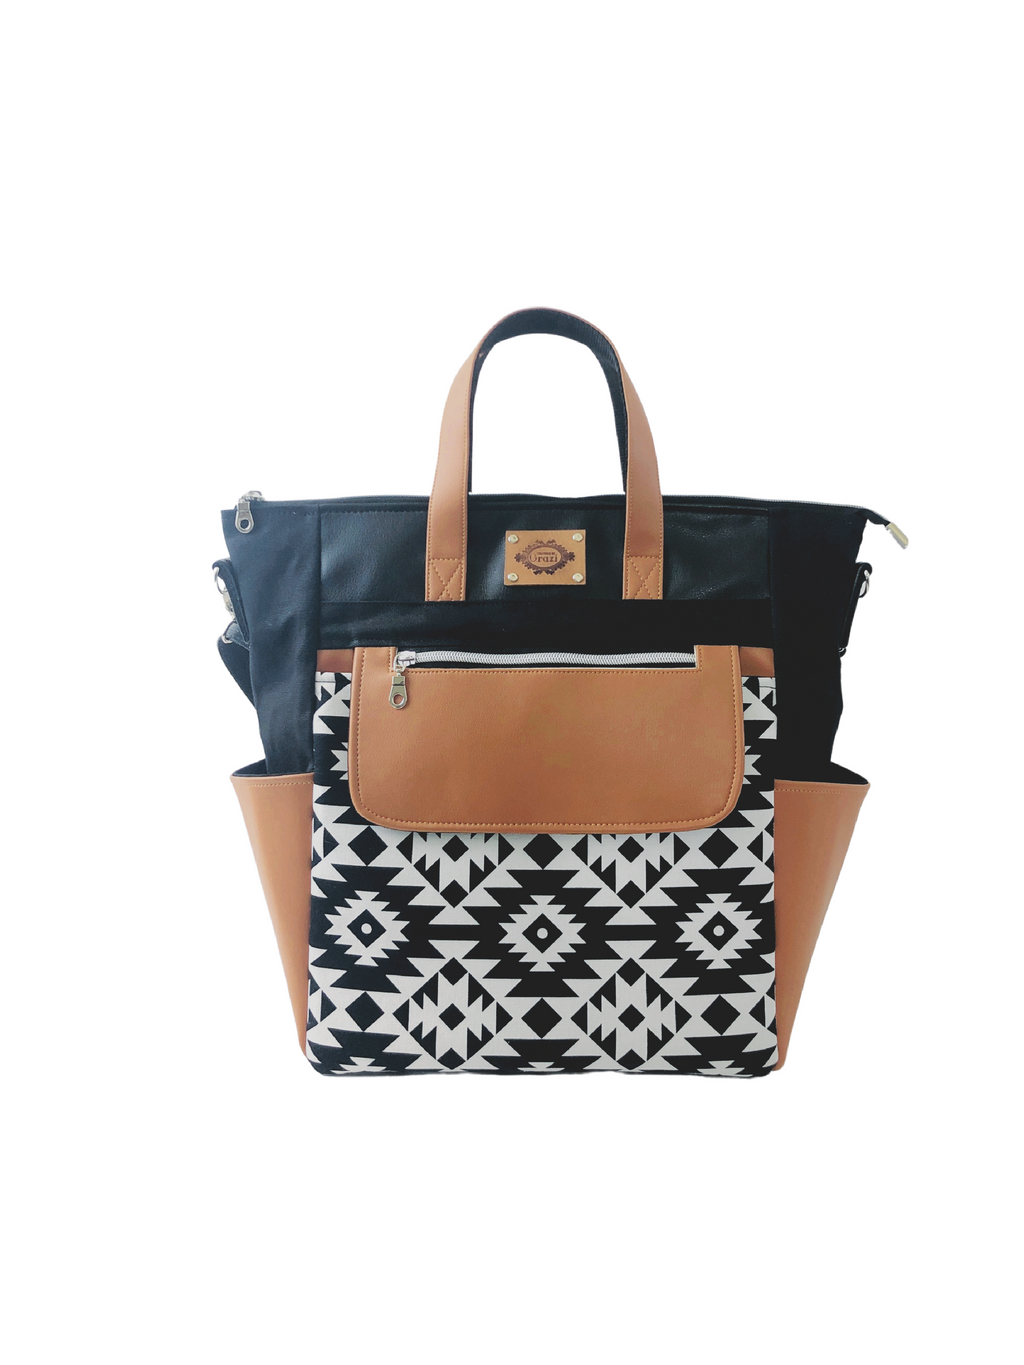 Convertible Travel Tote - Black and White - Part of ONEofaKIND Collection